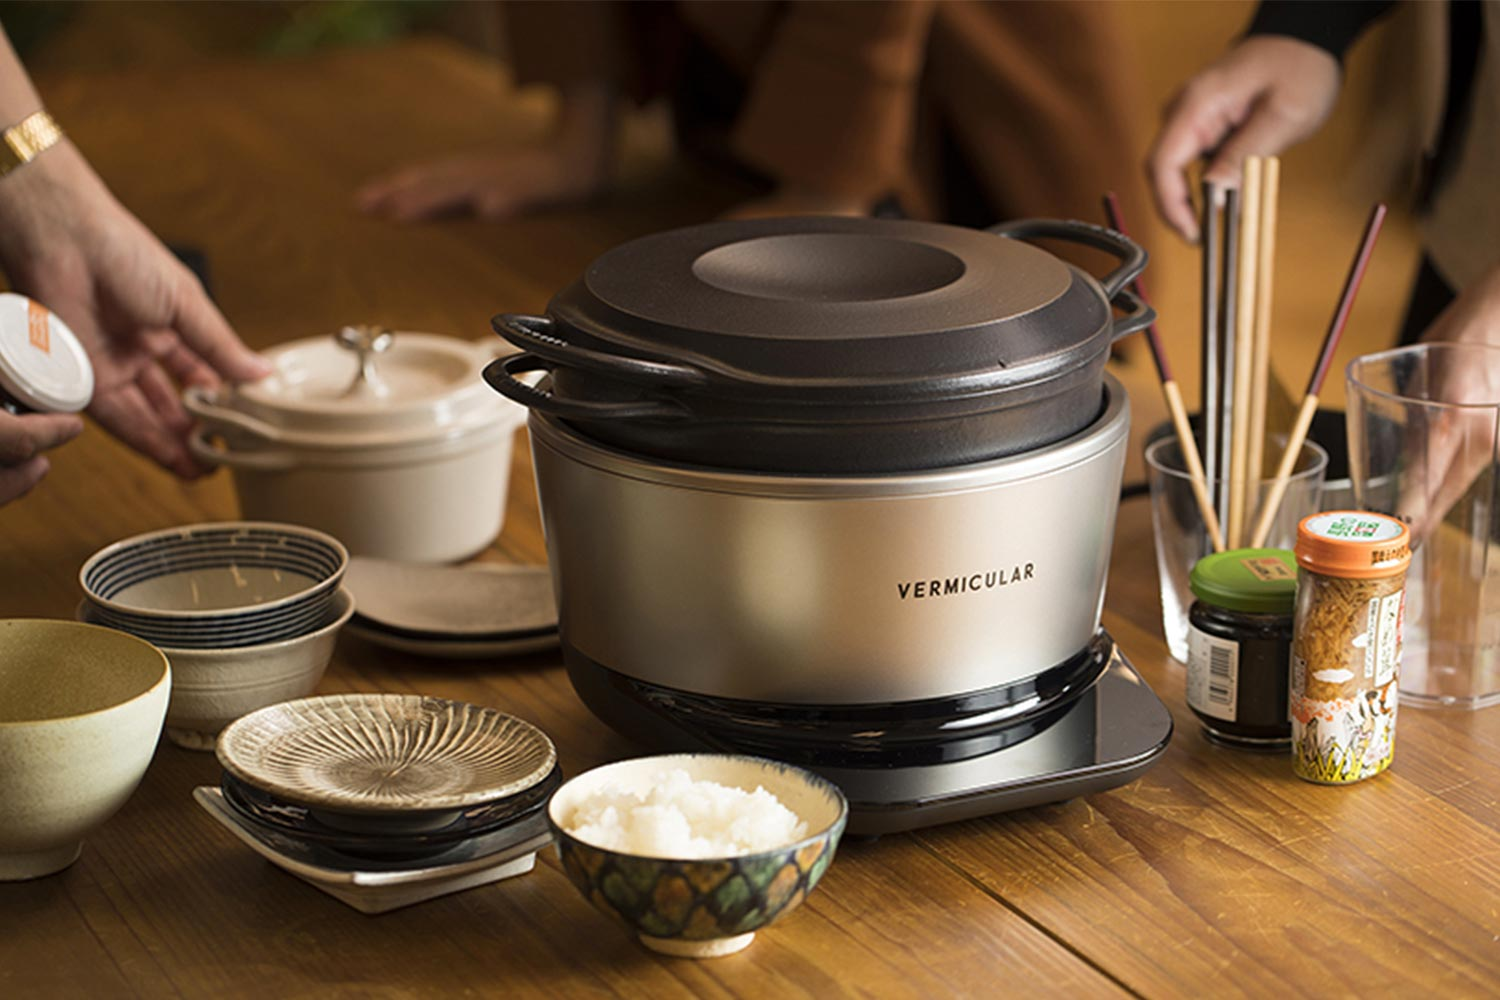 Vermicular ライスポット RICEPOT RP23A-SV